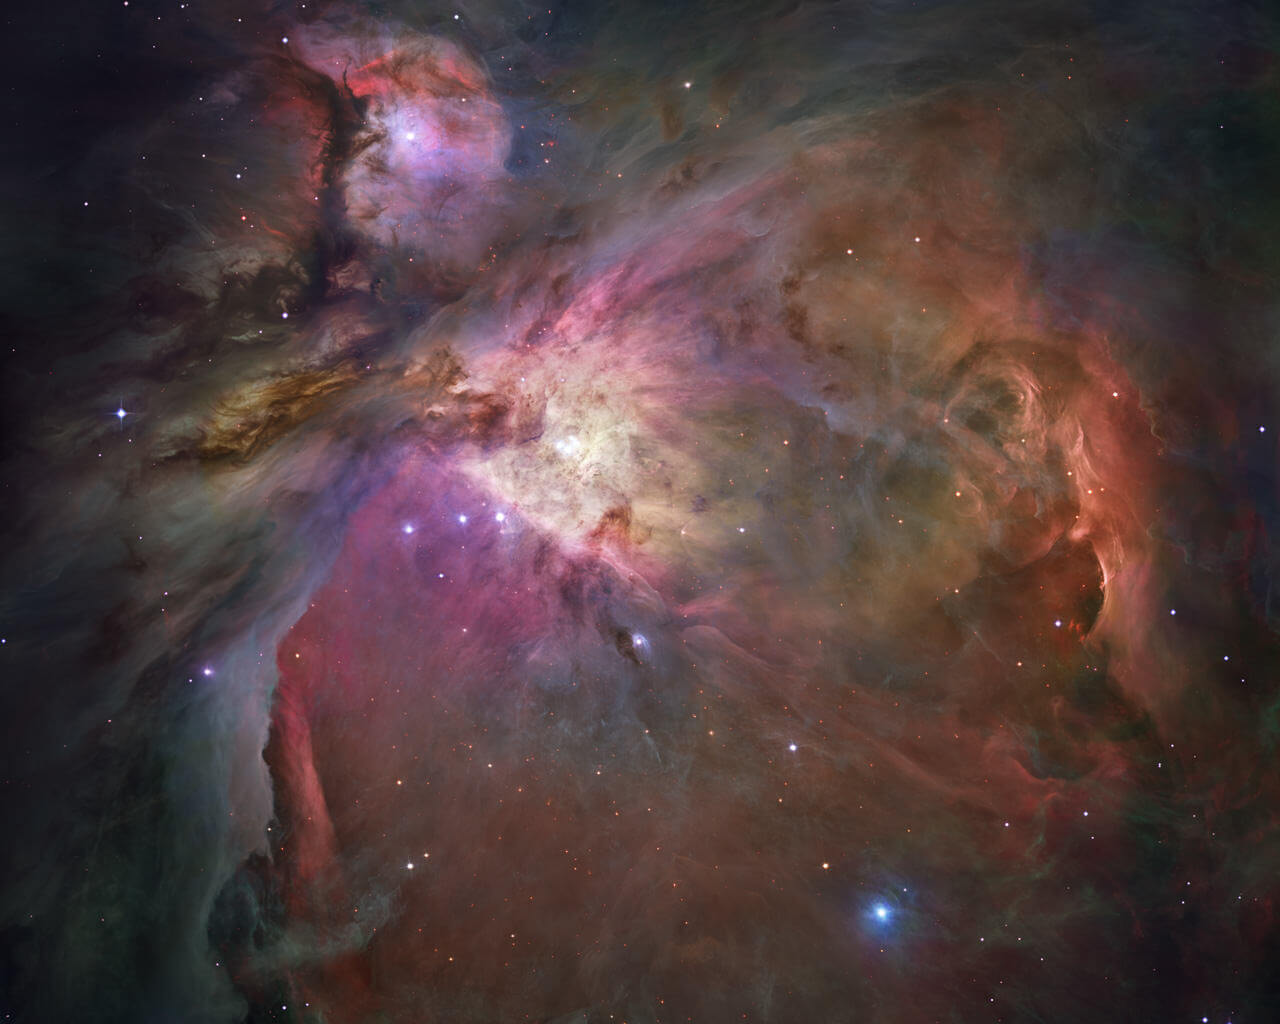 space is so cool - hubble pictures 14 (1)